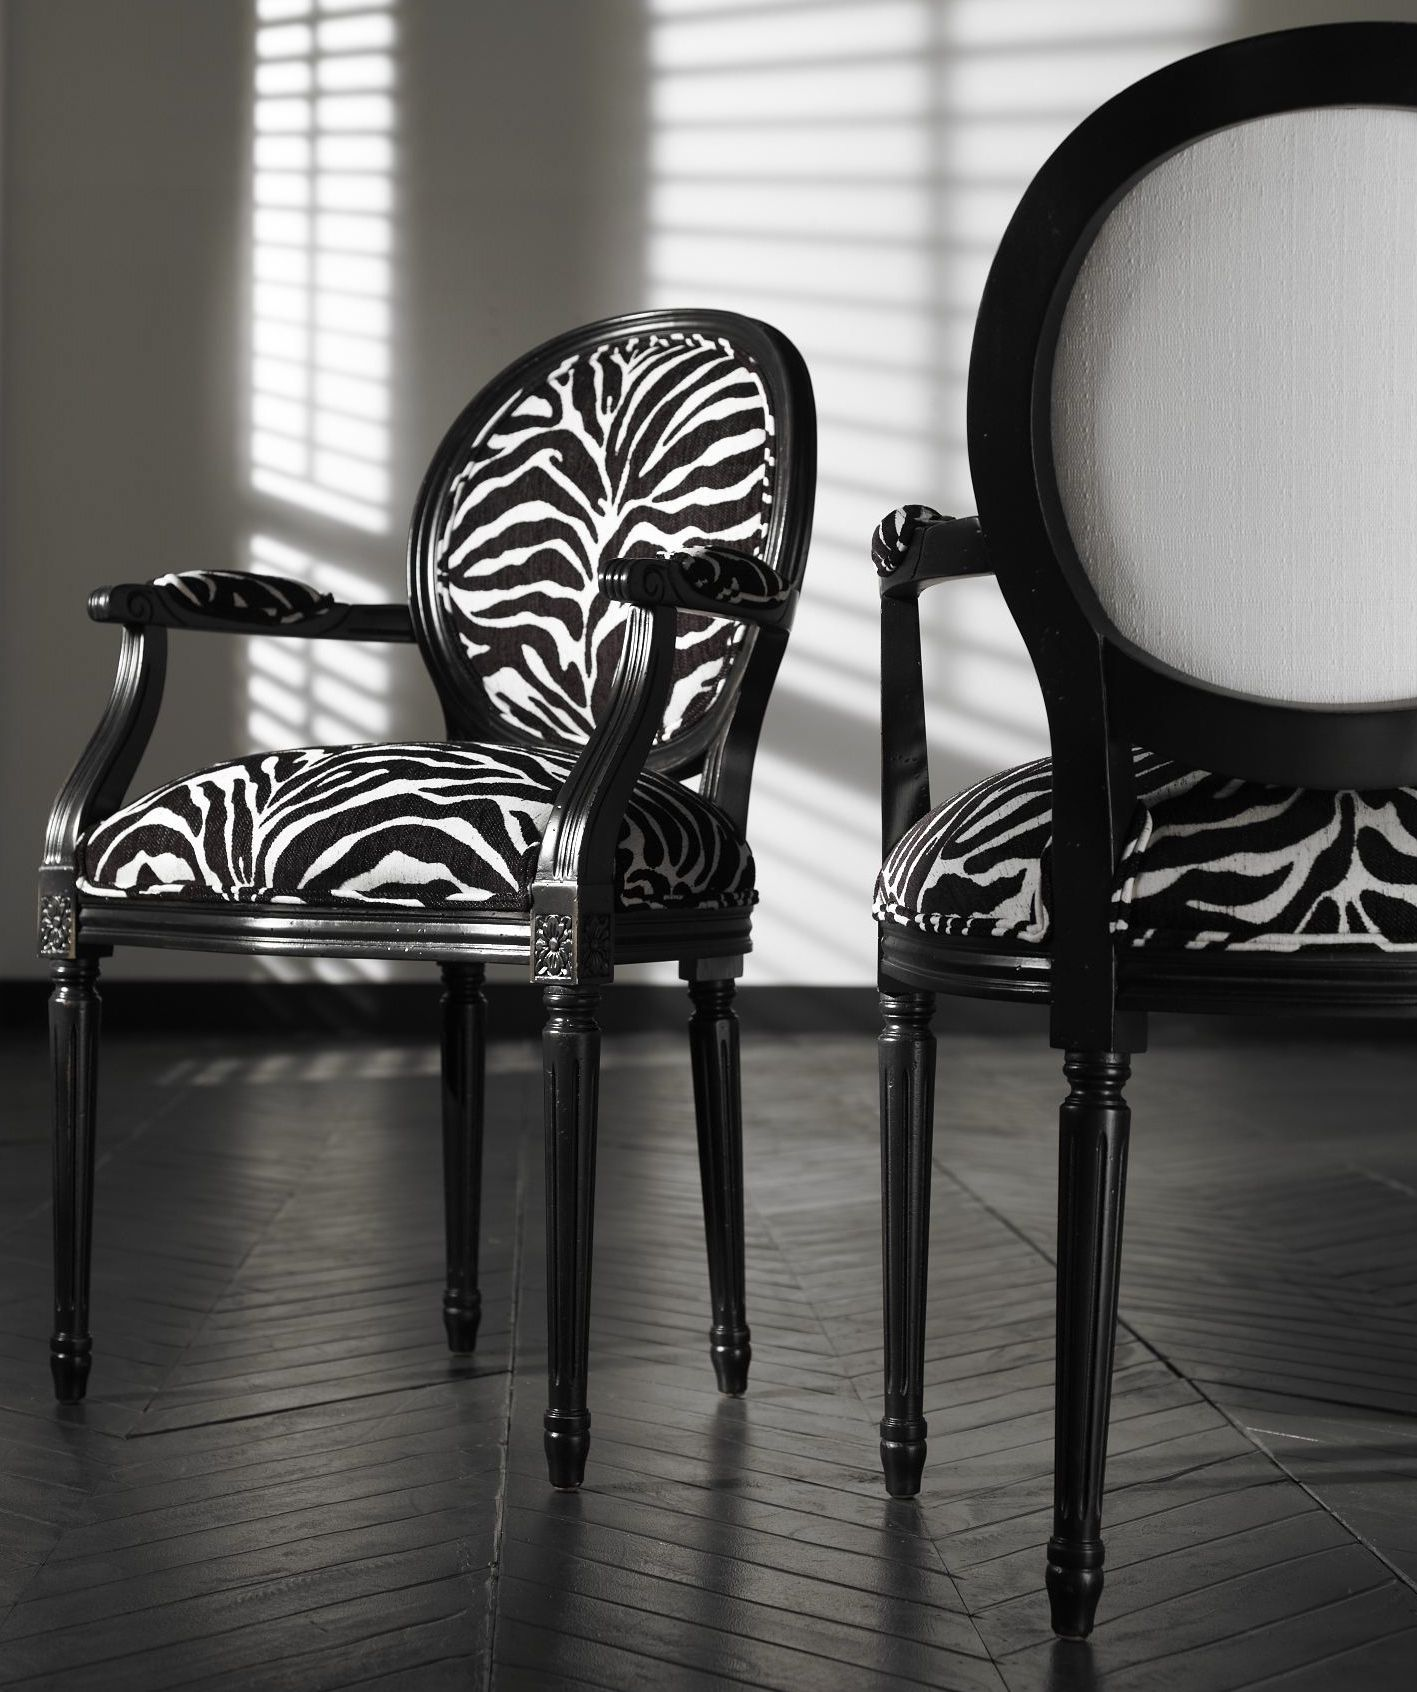 Black chair and white chair - Find This Pin And More On B L A C K